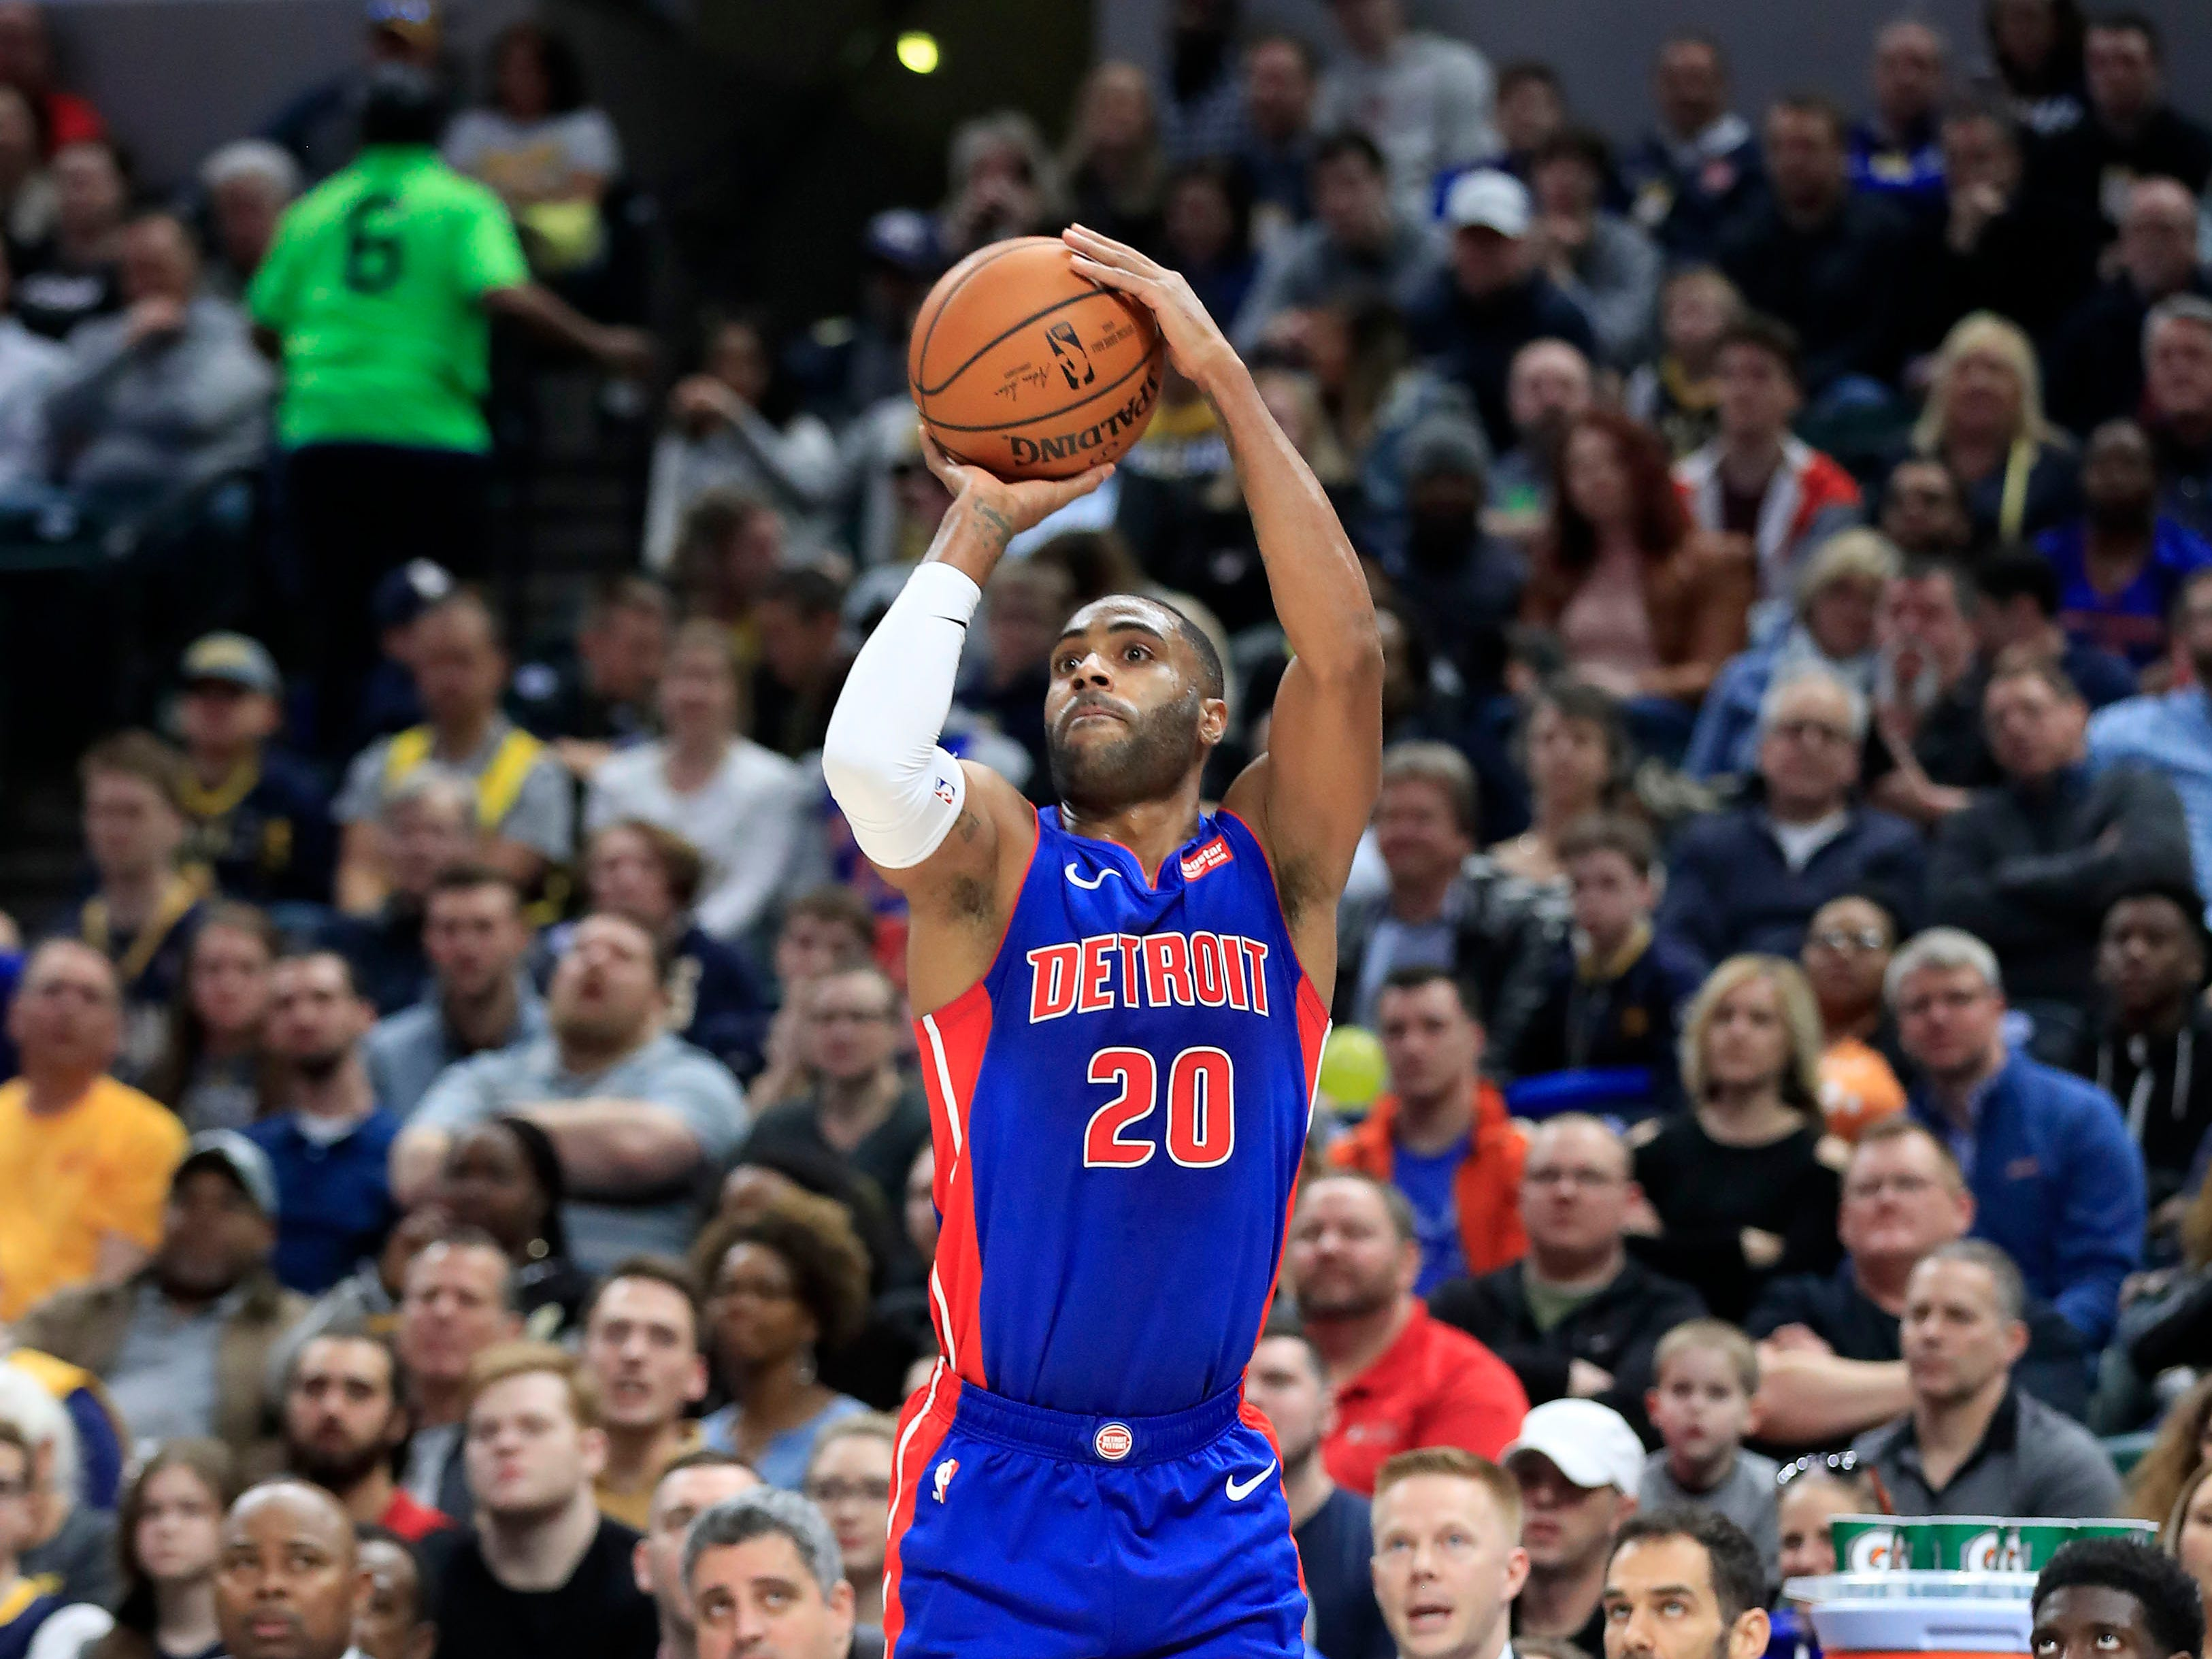 Detroit Pistons' Wayne Ellington shoots against the Indiana Pacers at Bankers Life Fieldhouse on April 1, 2019 in Indianapolis.